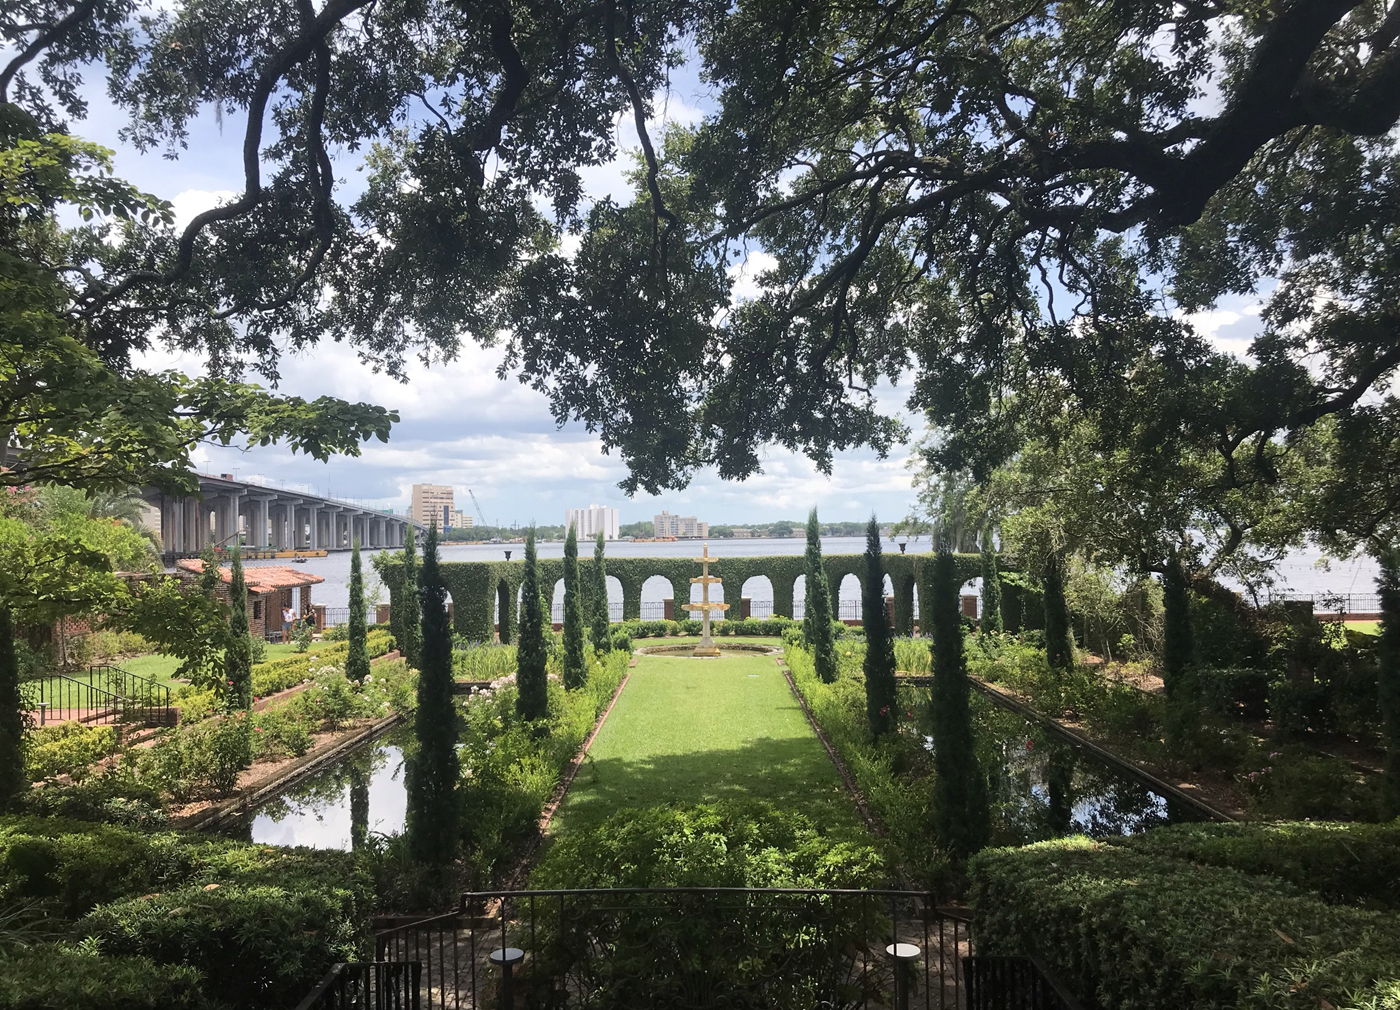 Visiting Jacksonville: Located on the St. Johns riverfront, the gardens at the Cummer Museum beg to be photographed. (Photo: Bonnie Gross)